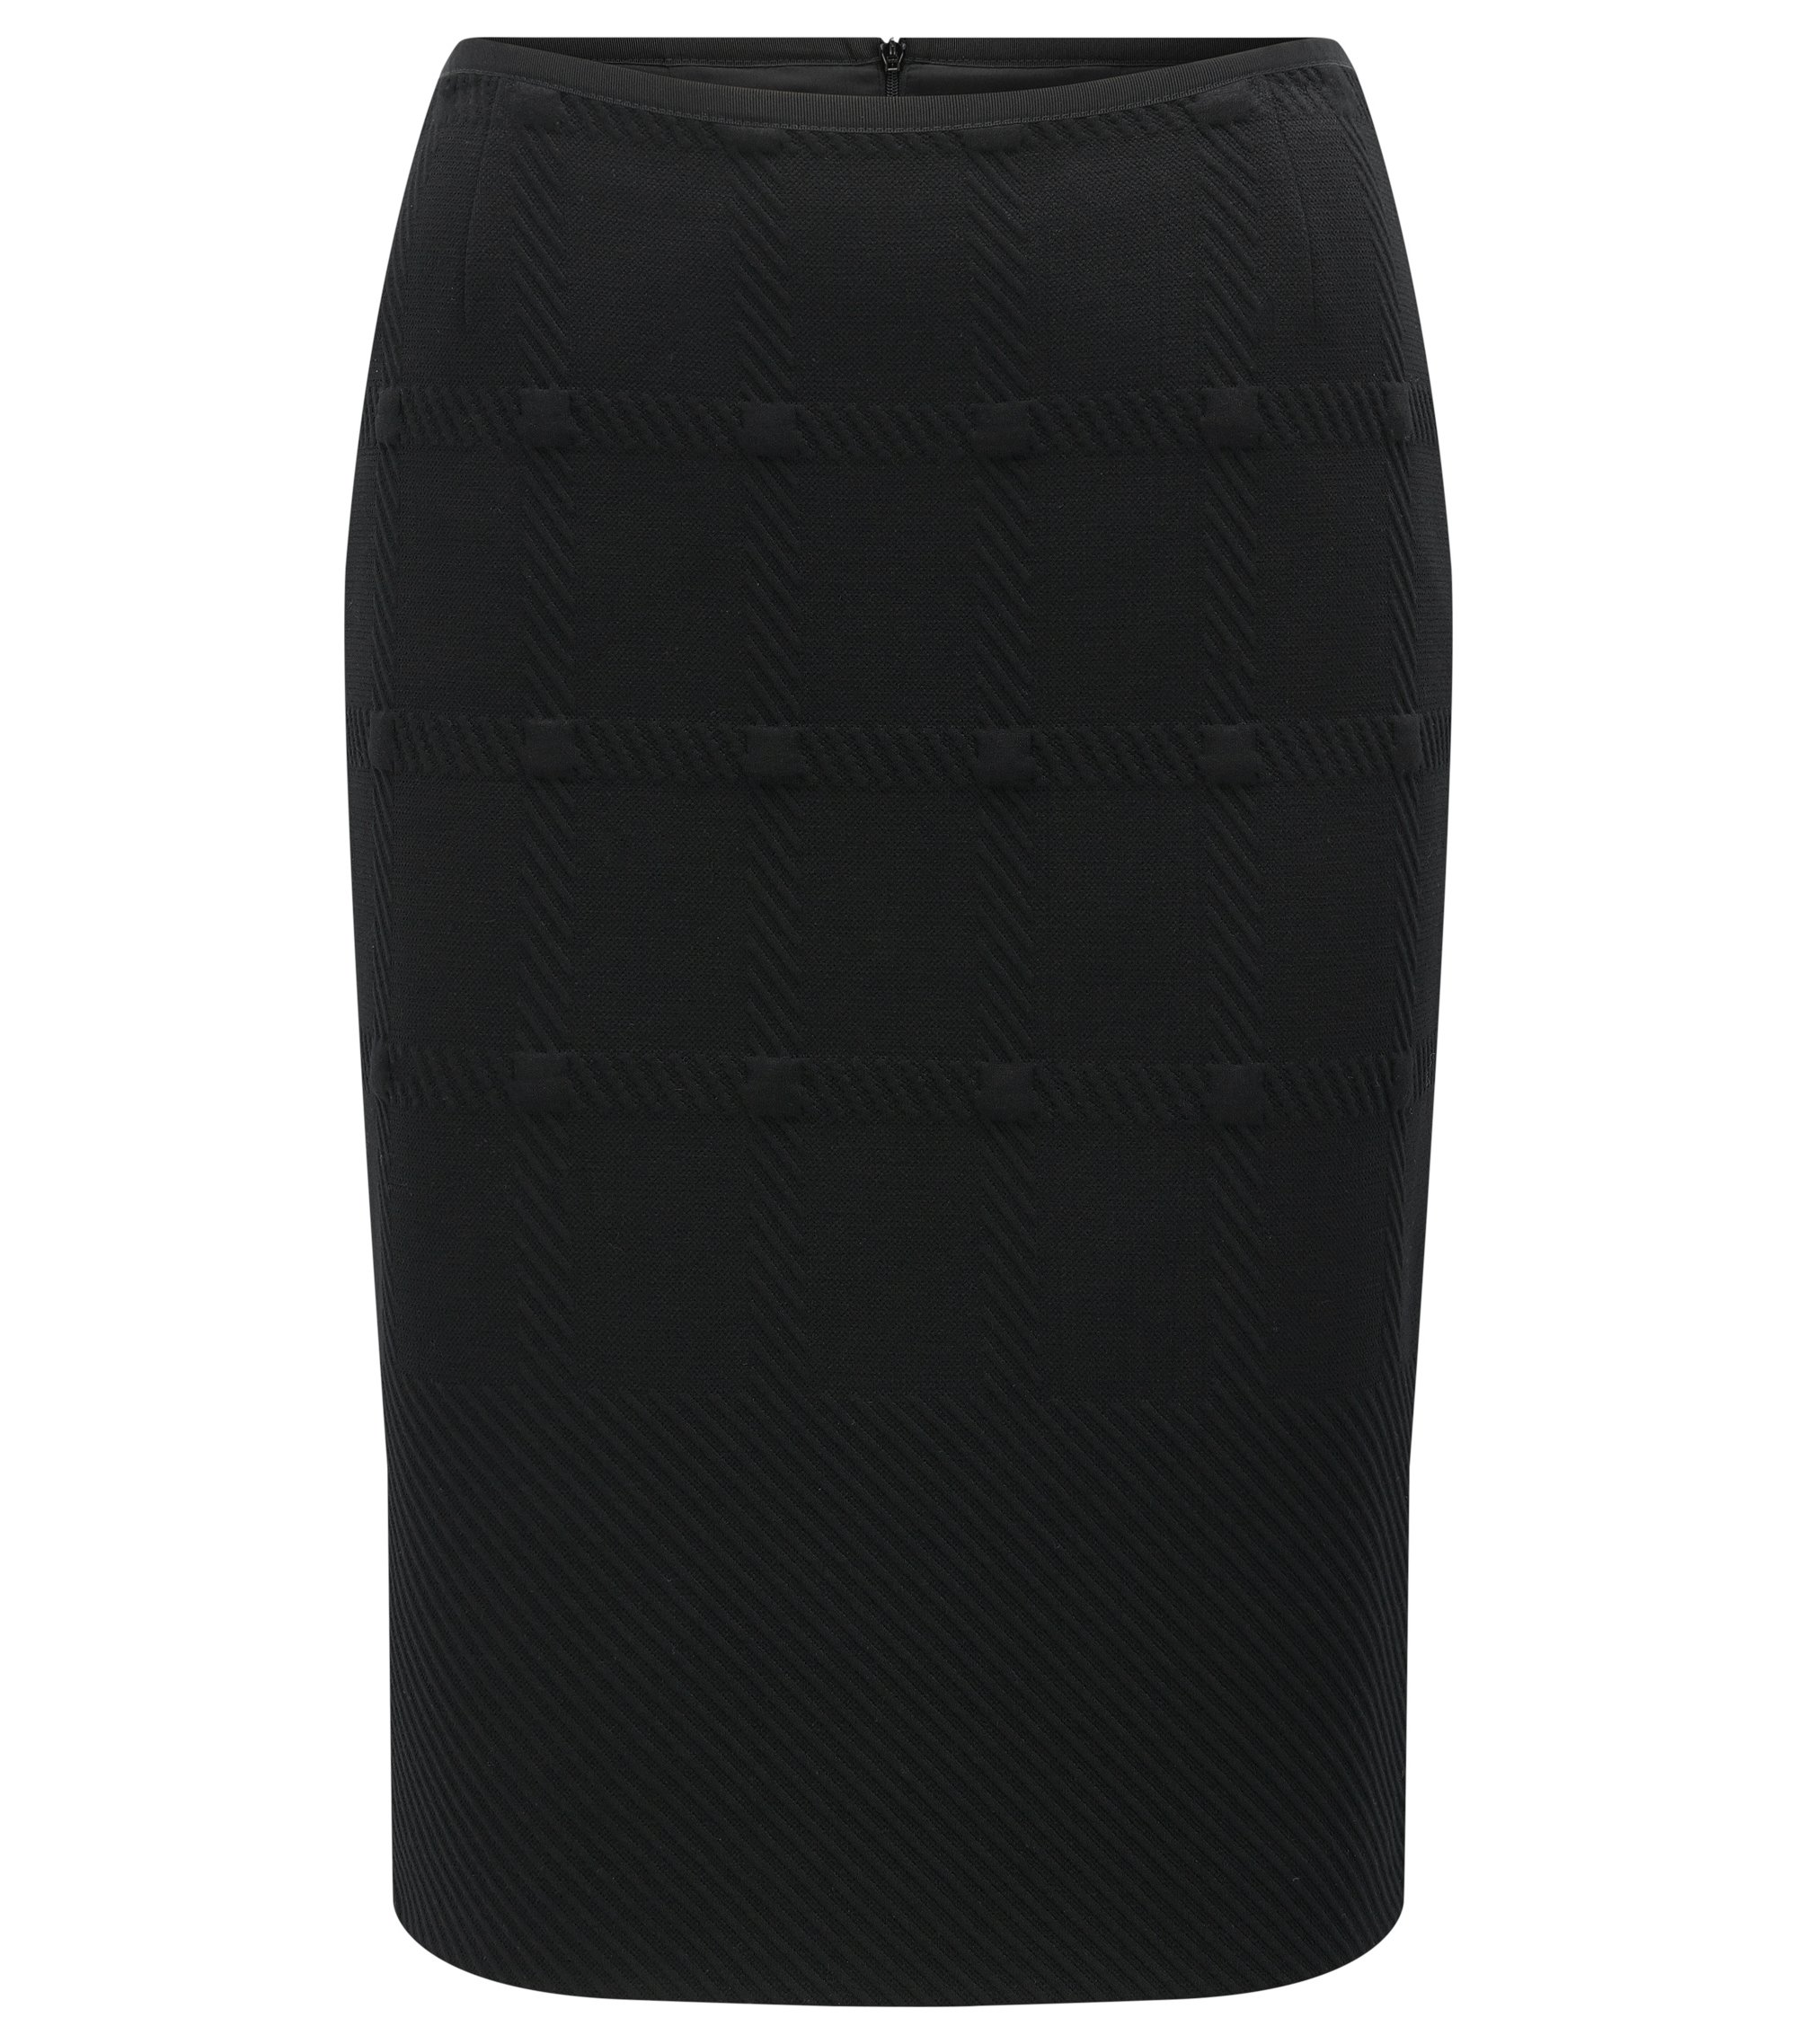 Pencil skirt in check-structure jersey, Black